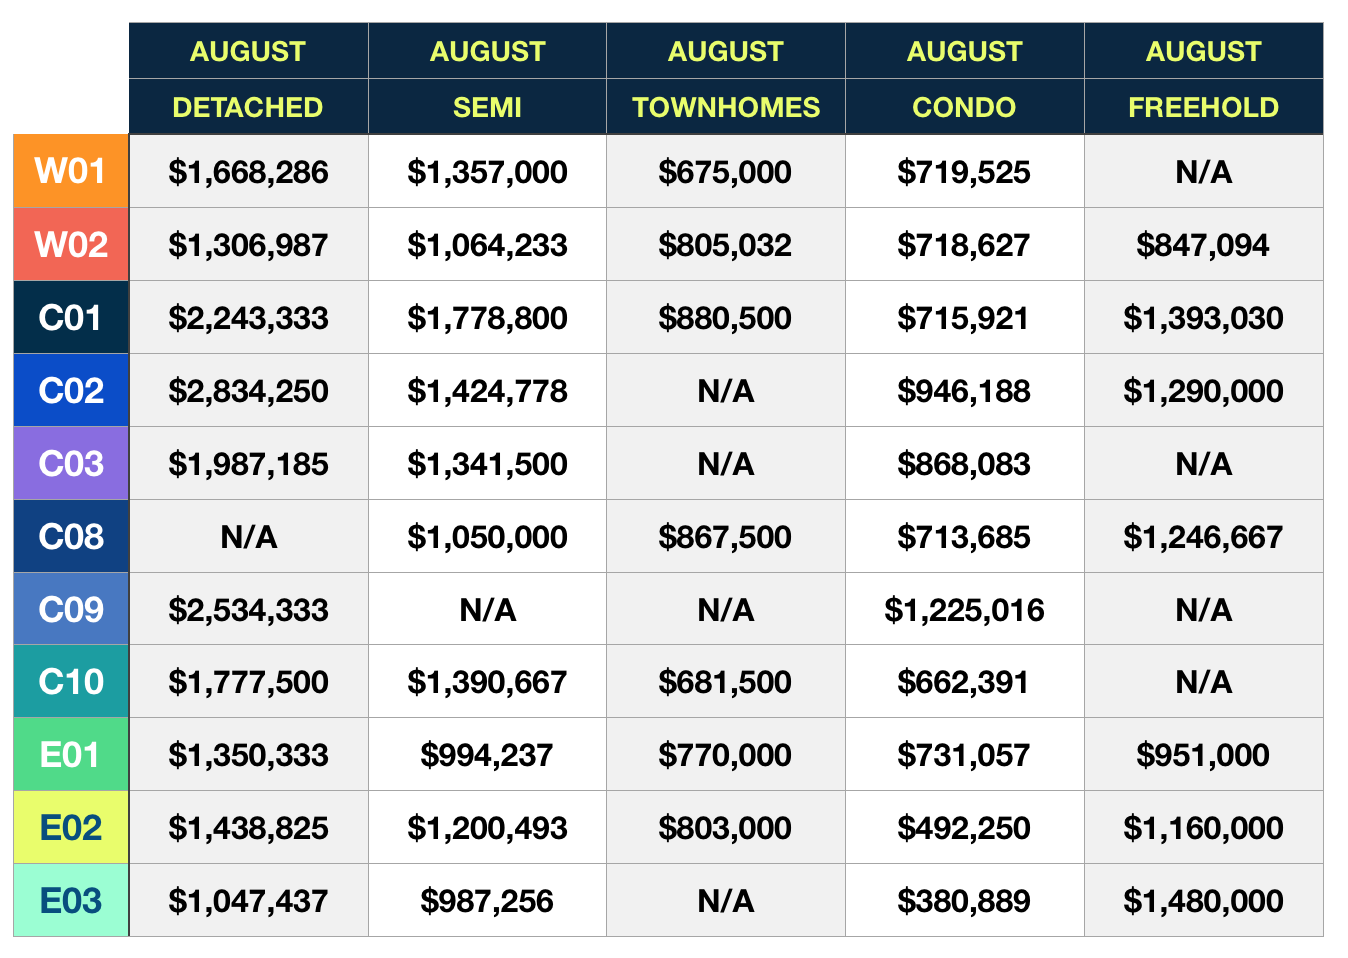 August 2019 Toronto Average Home Prices